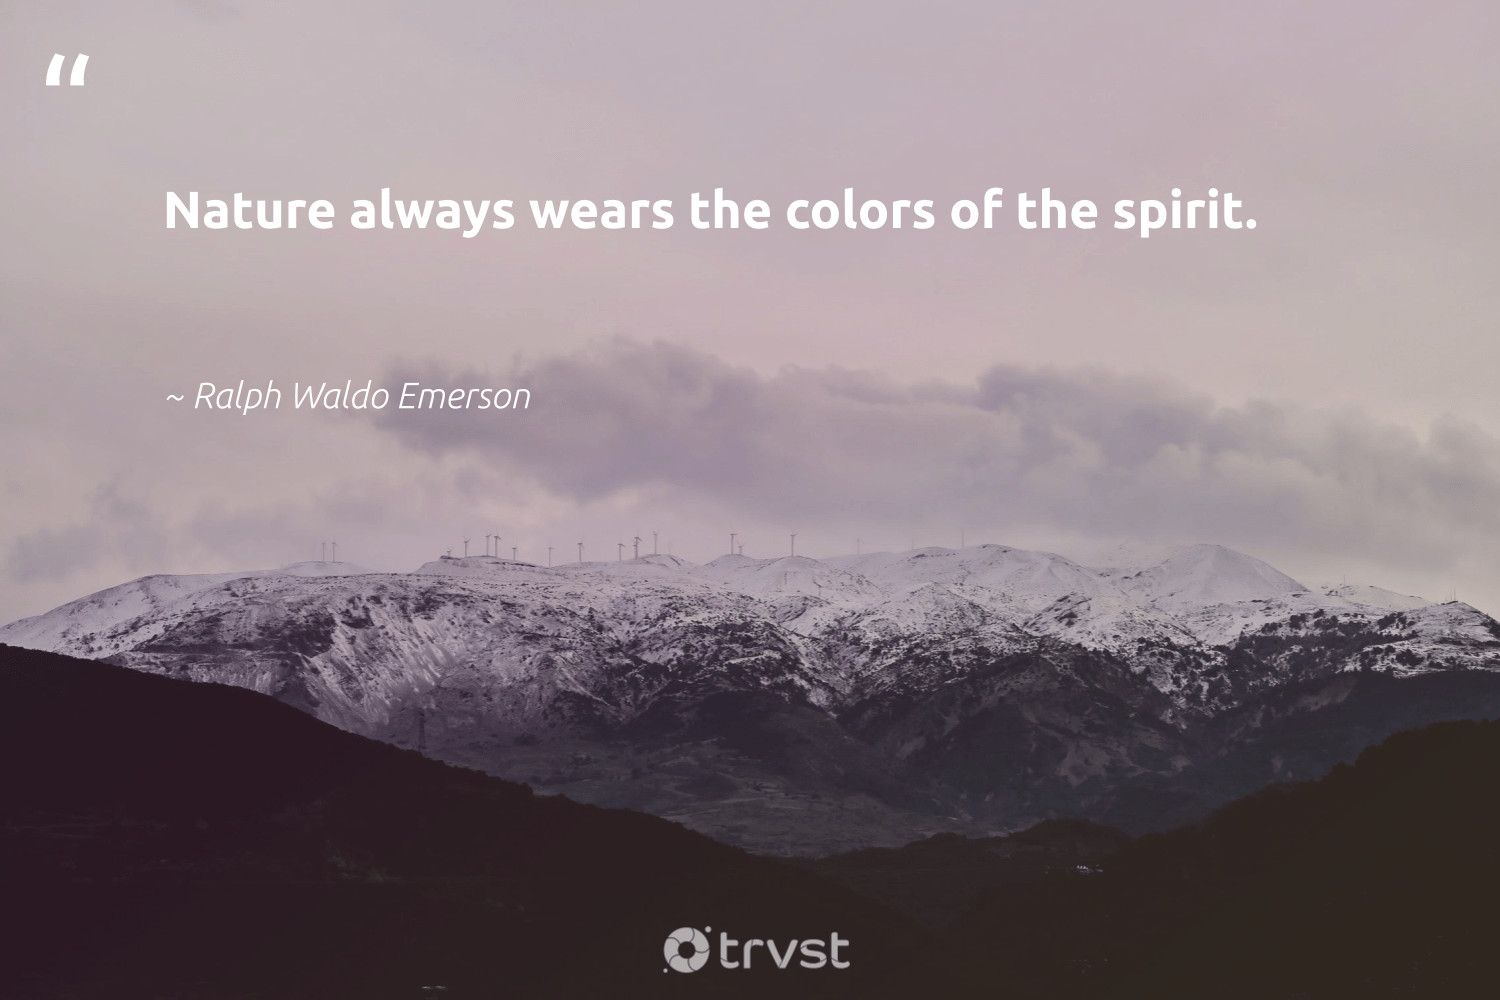 """""""Nature always wears the colors of the spirit.""""  - Ralph Waldo Emerson #trvst #quotes #environment #nature #mothernature #earth #gogreen #ecoconscious #conservation #volunteer #eco #dogood"""